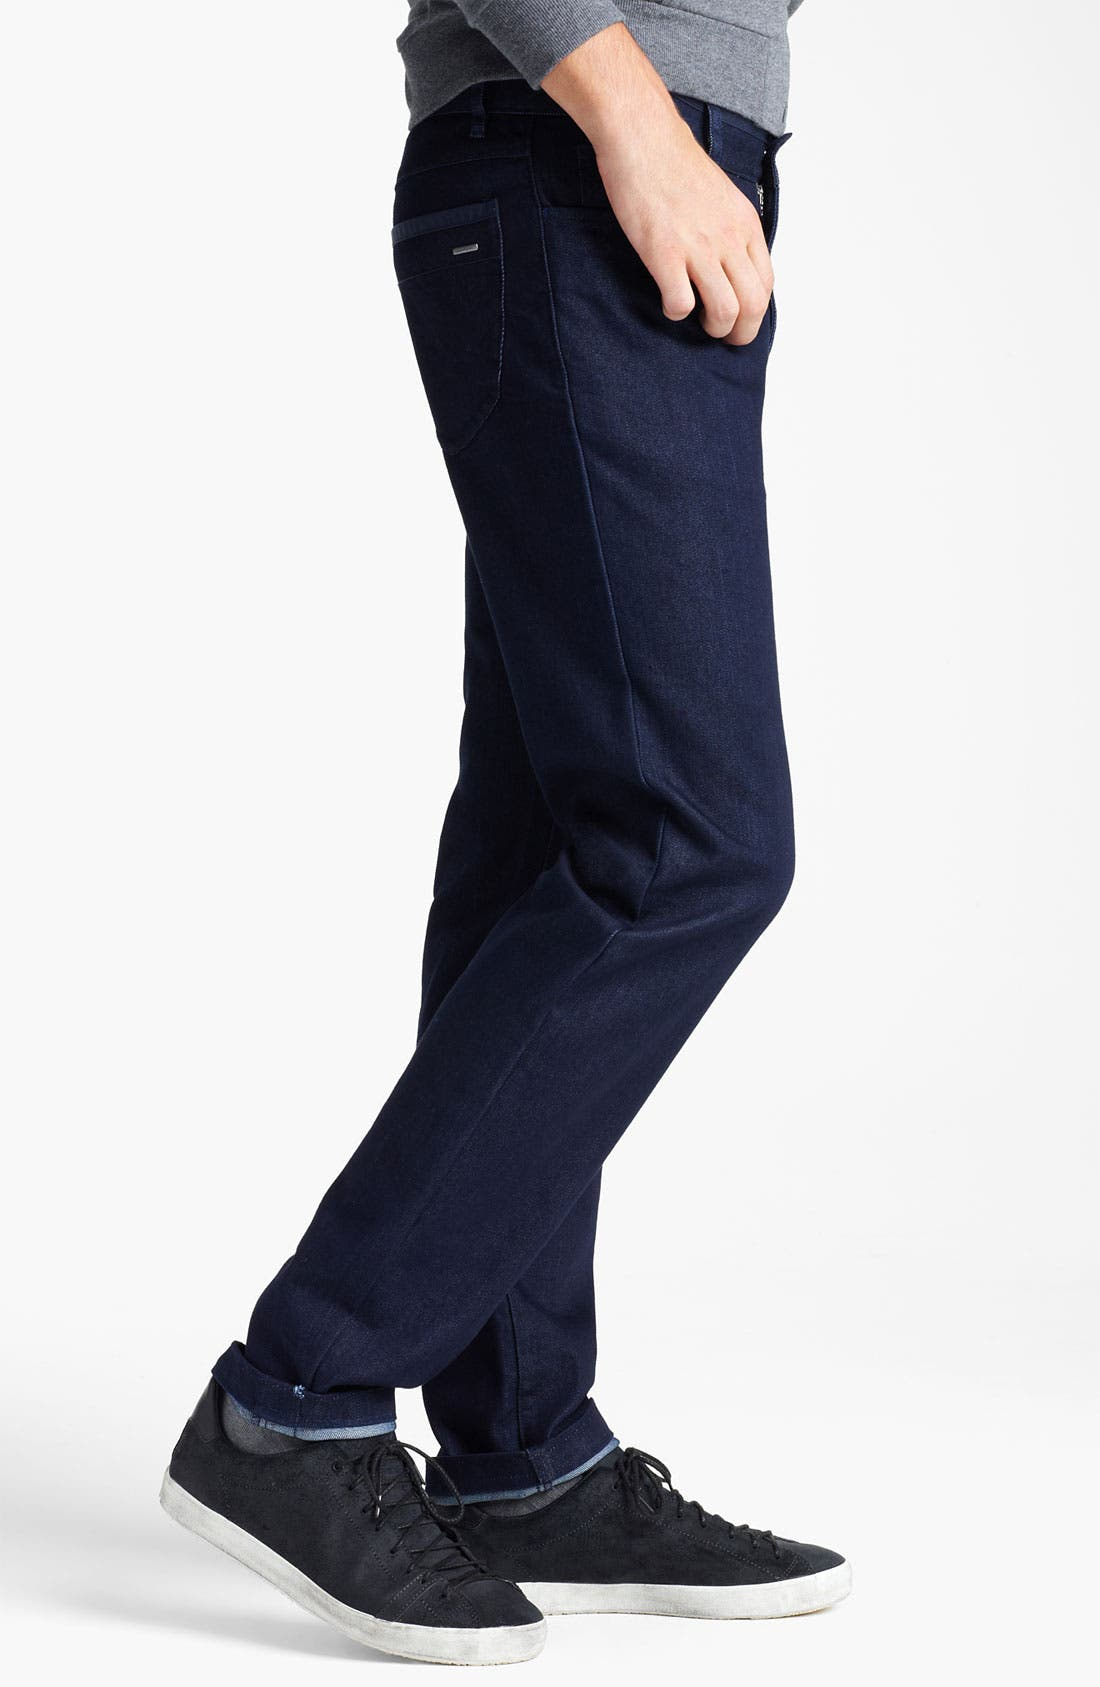 Alternate Image 3  - Zegna Sport 'Cool Max' Straight Leg Jeans (Dark Blue)